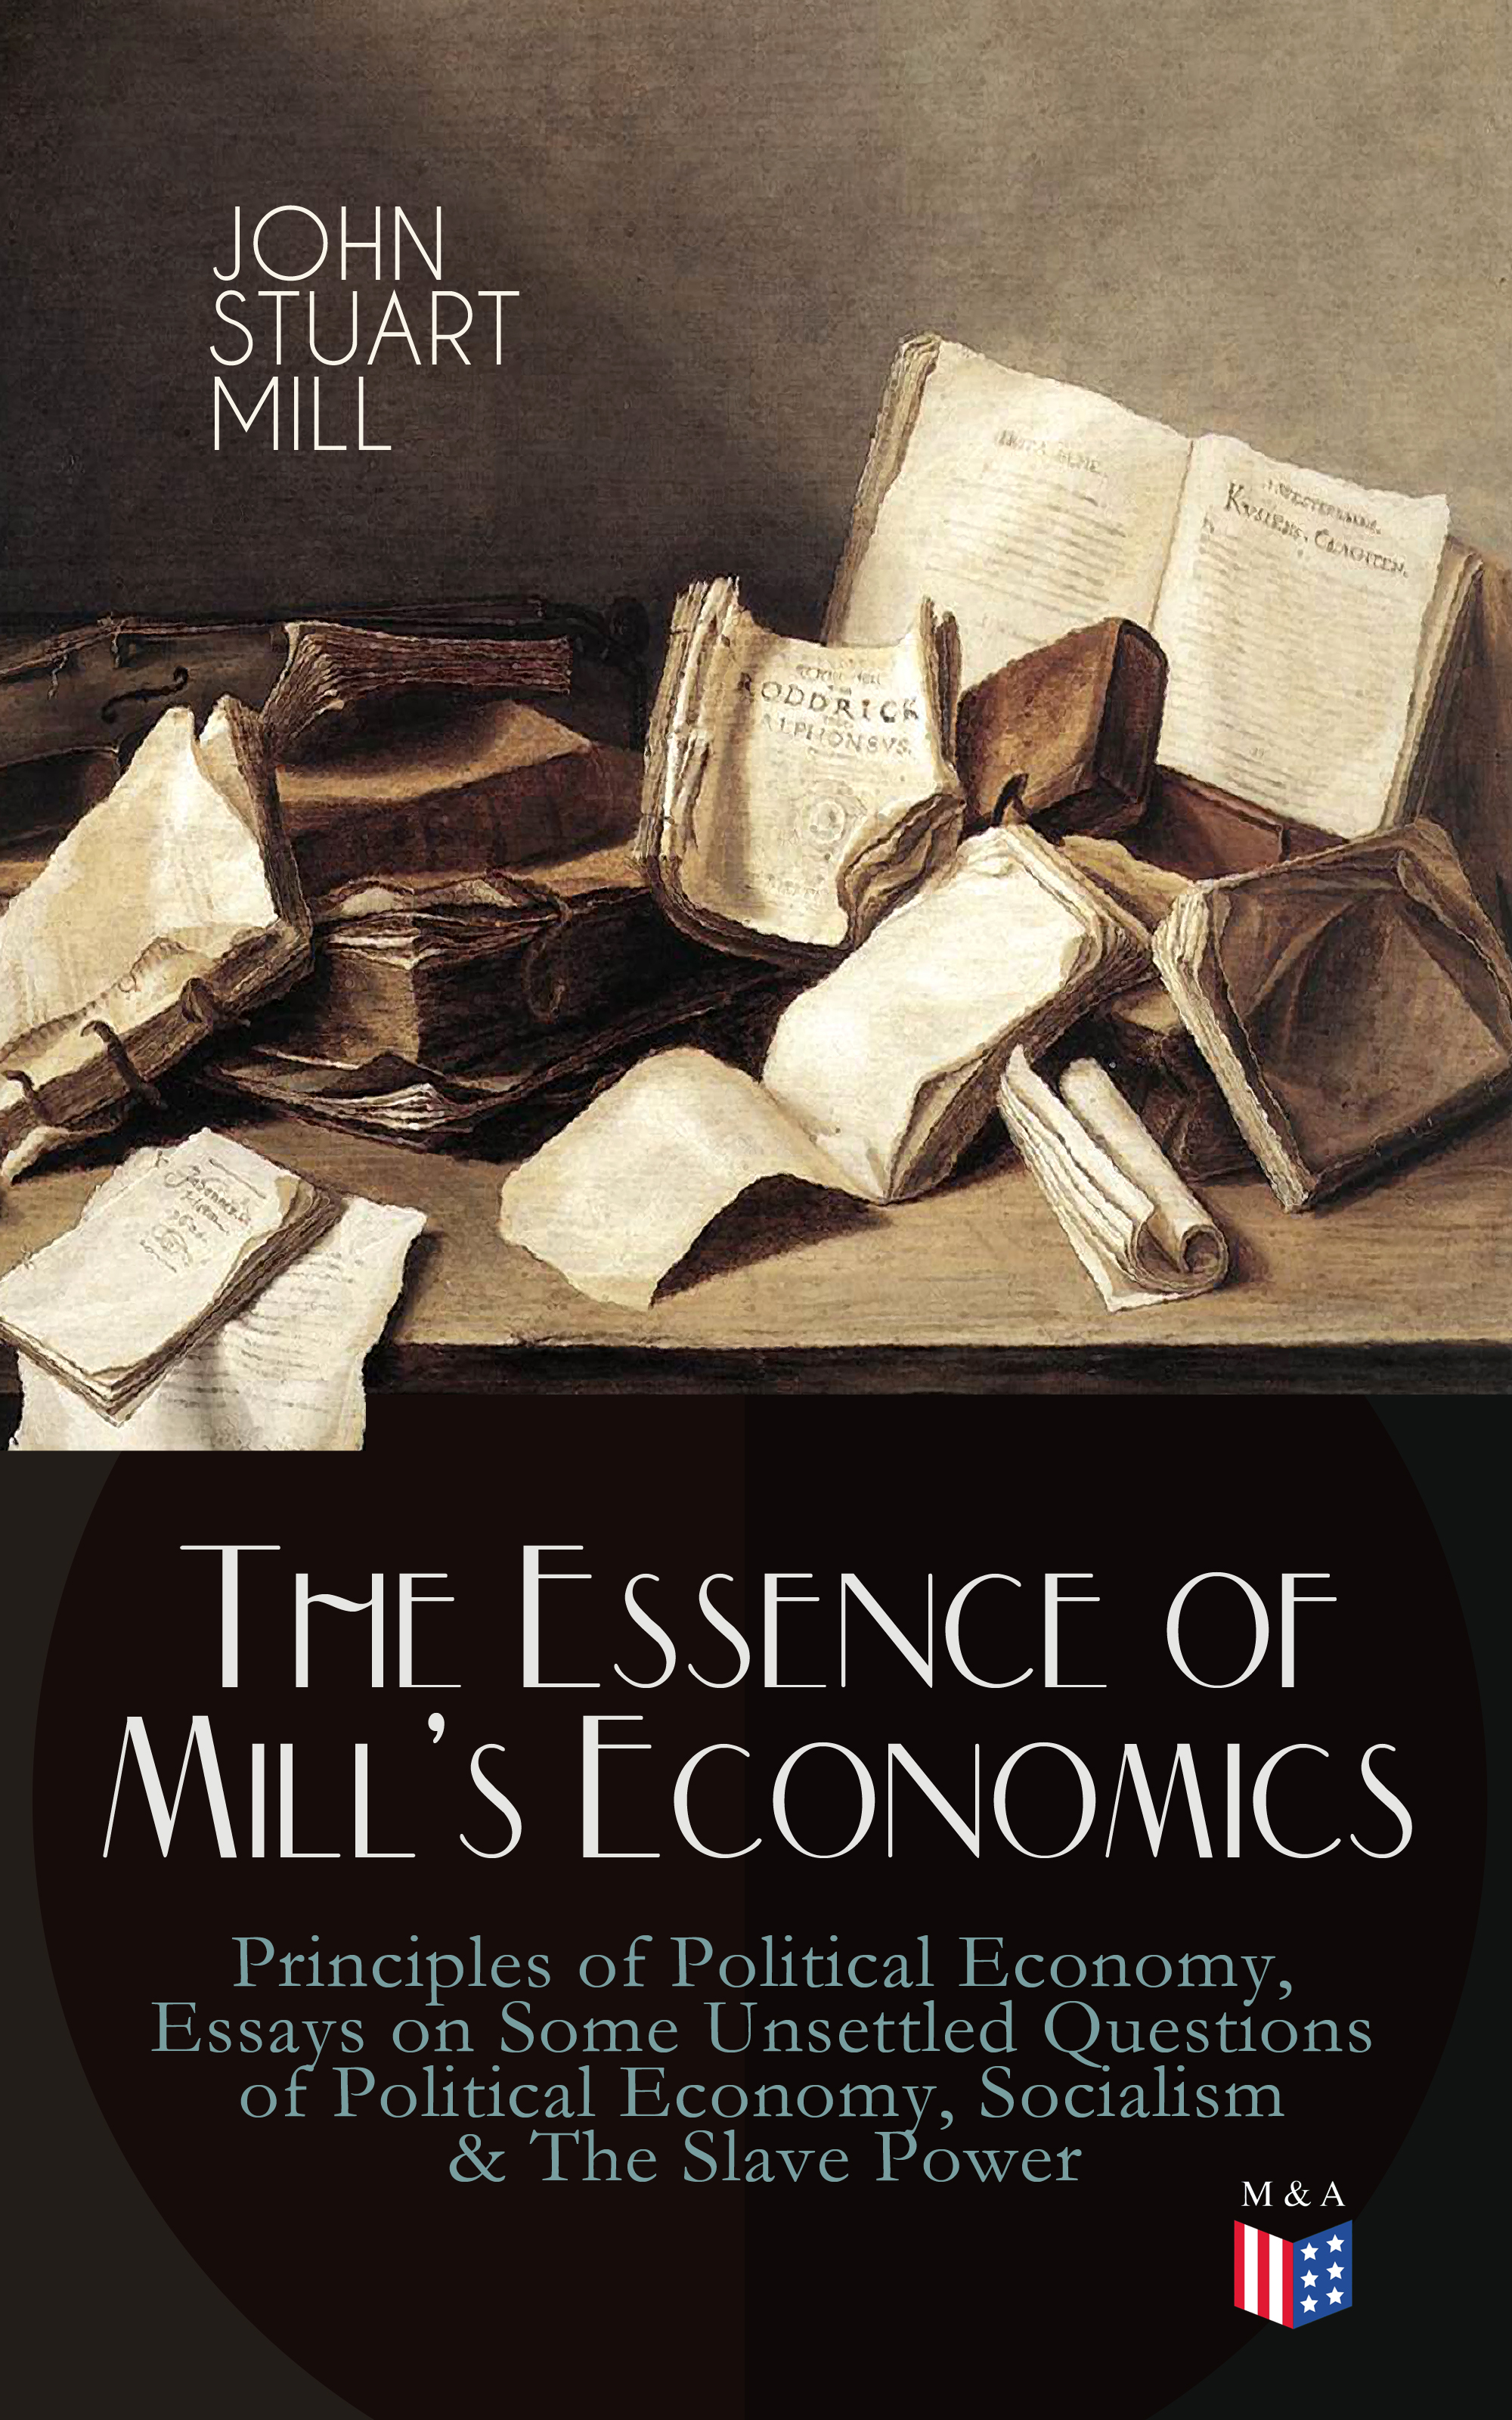 John Stuart Mill The Essence of Mill's Economics: Principles of Political Economy, Essays on Some Unsettled Questions of Political Economy, Socialism & The Slave Power effect of some heavy metal salts on the formation of ettringite